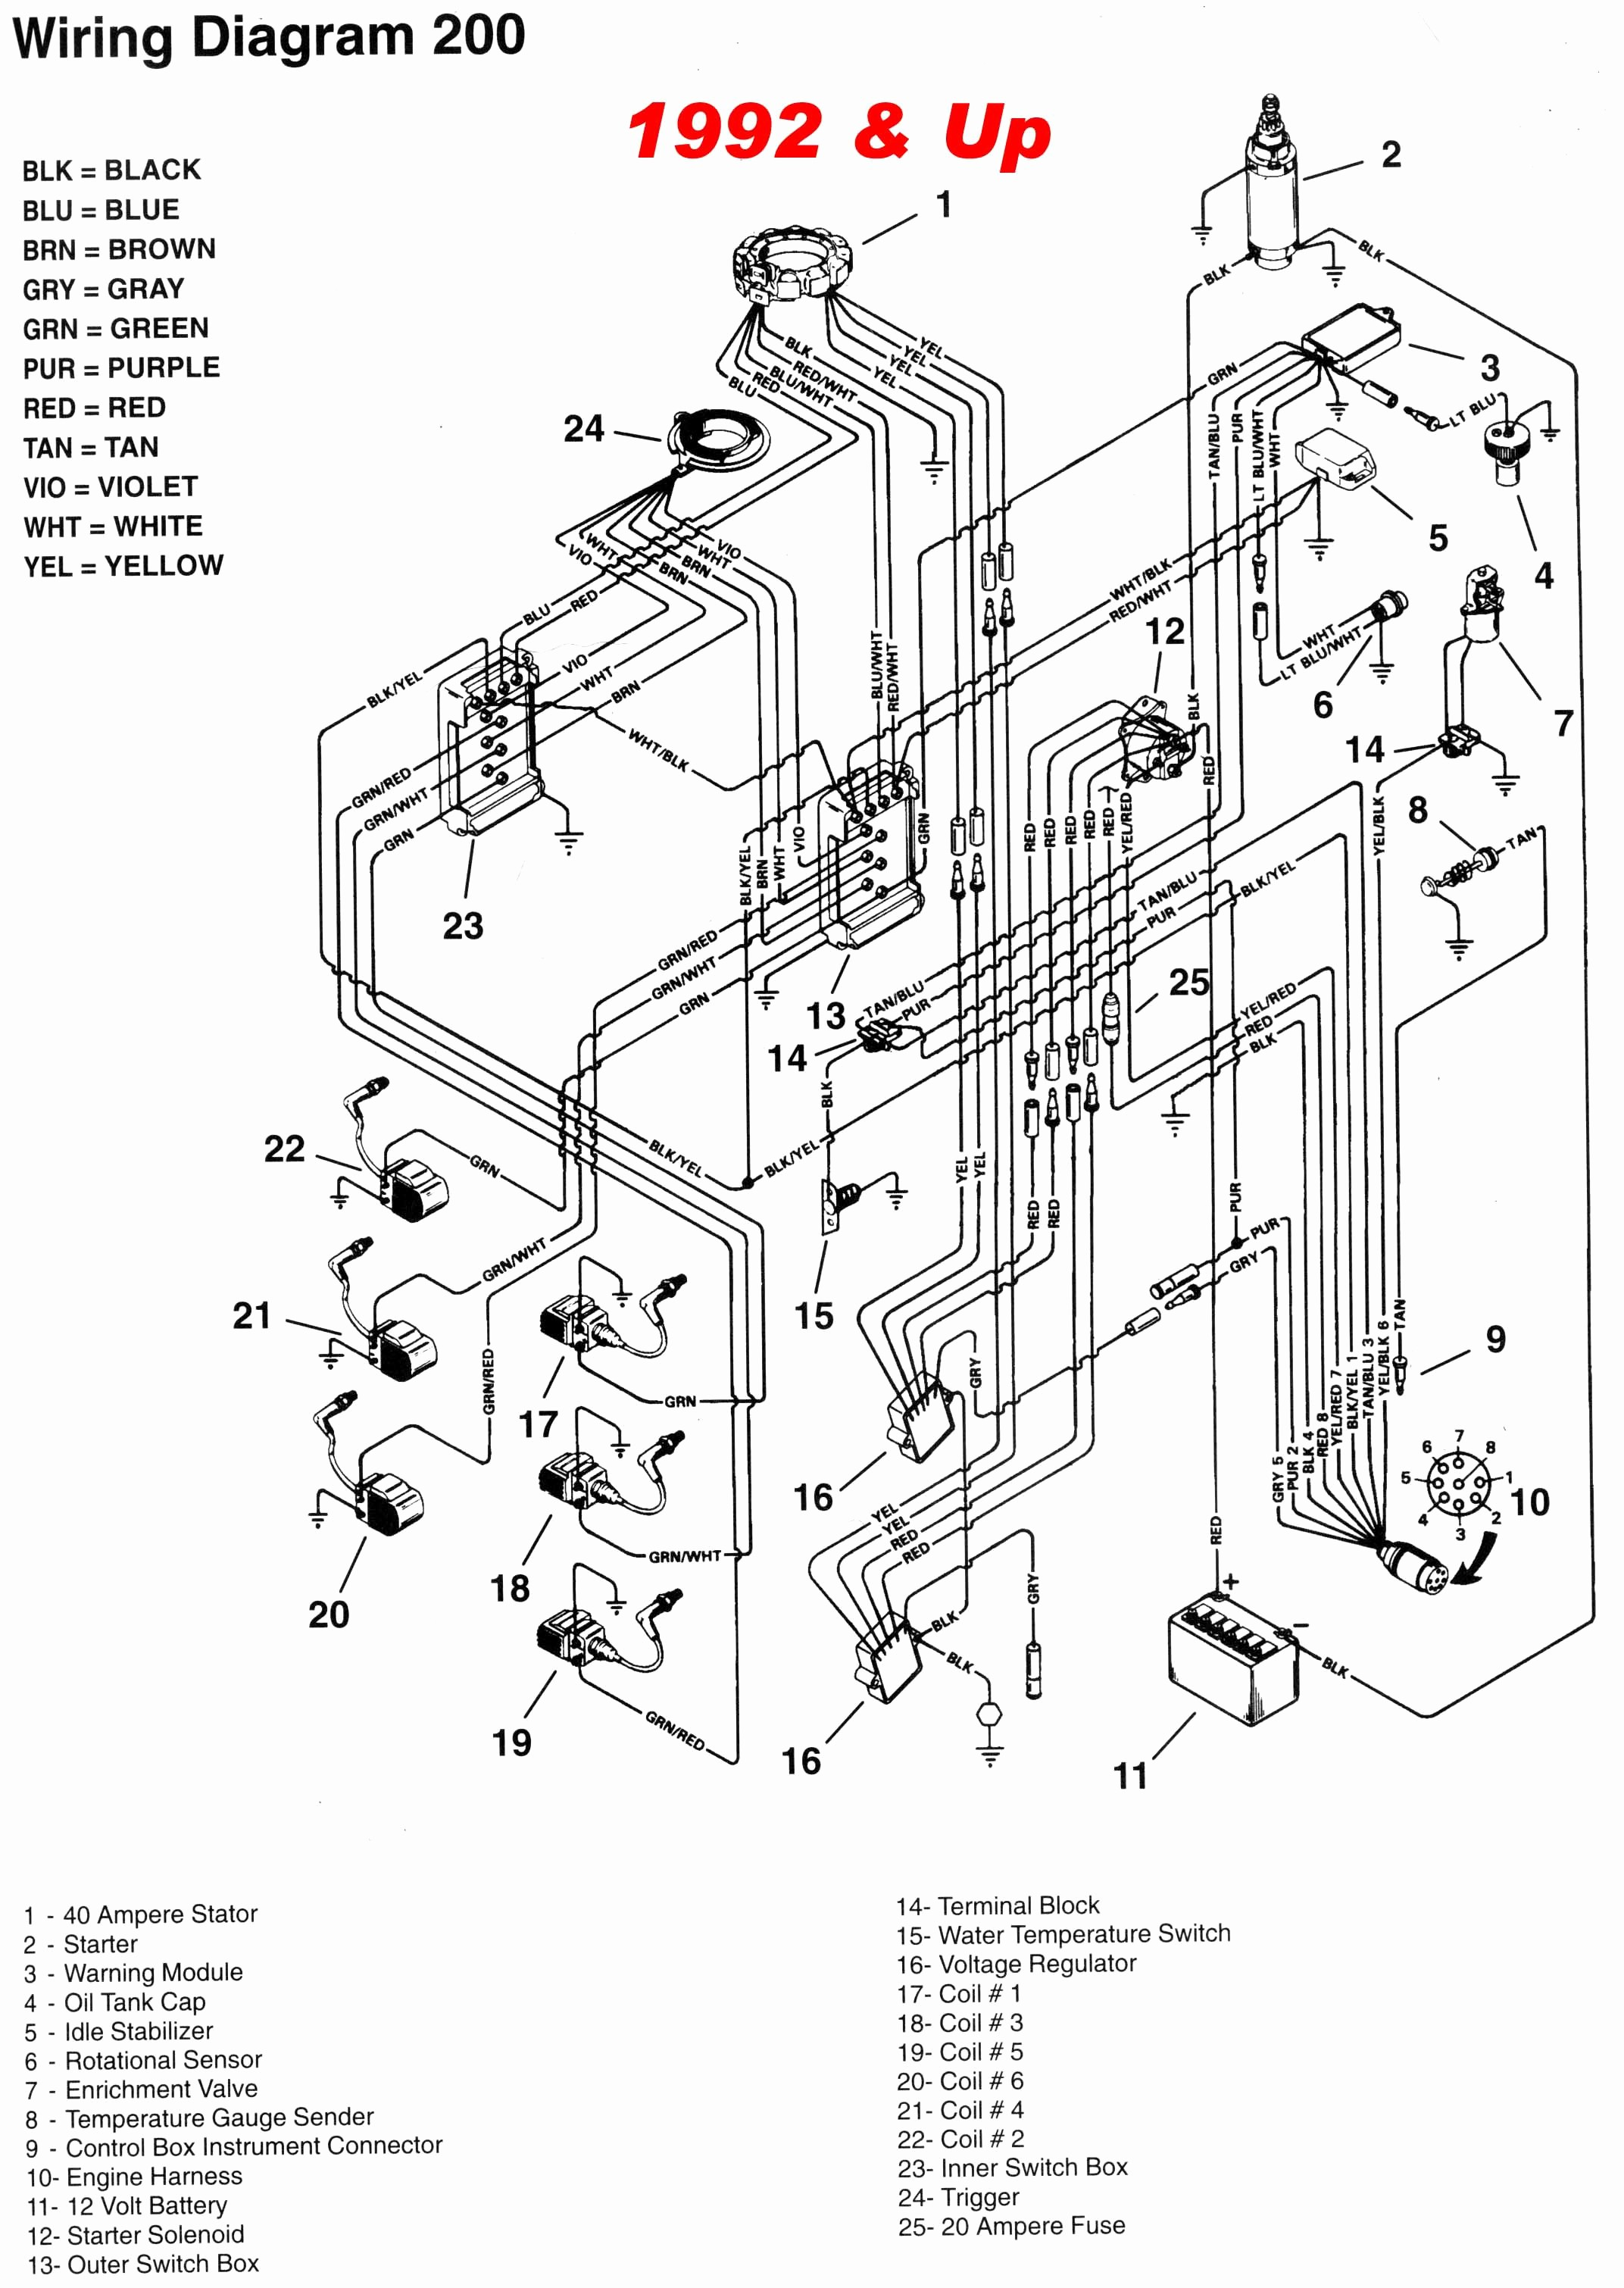 2000 vw wiring diagram computer online schematics diagram rh delvato co  2000 vw jetta cooling fan